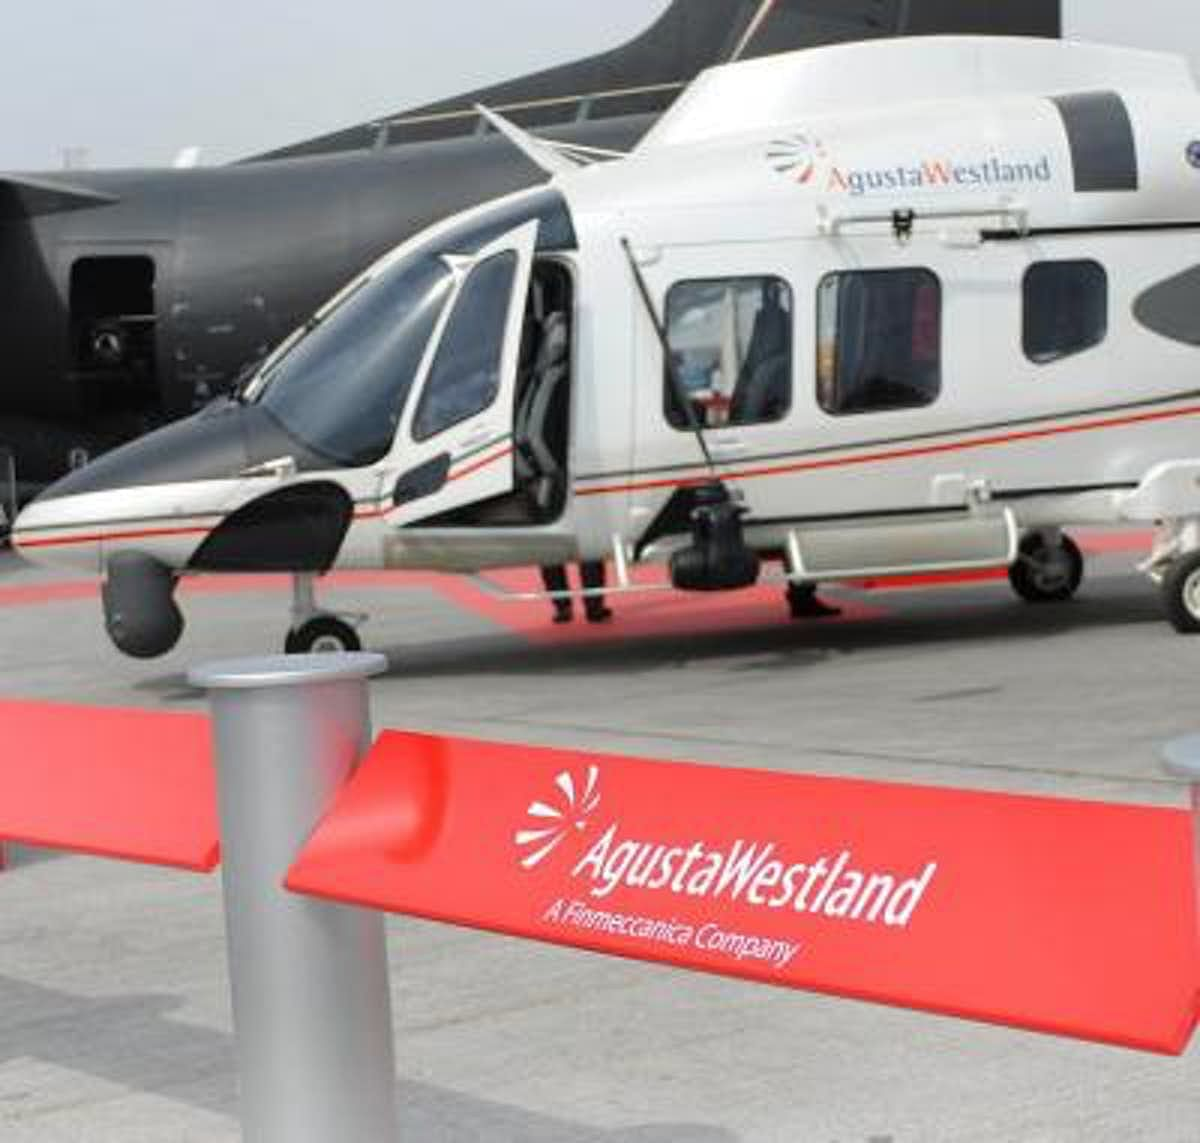 India terminated the Rs 3,600 crore deal for VIP choppers with AgustaWestland after bribery allegations tainted the deal on 1 January 2014.